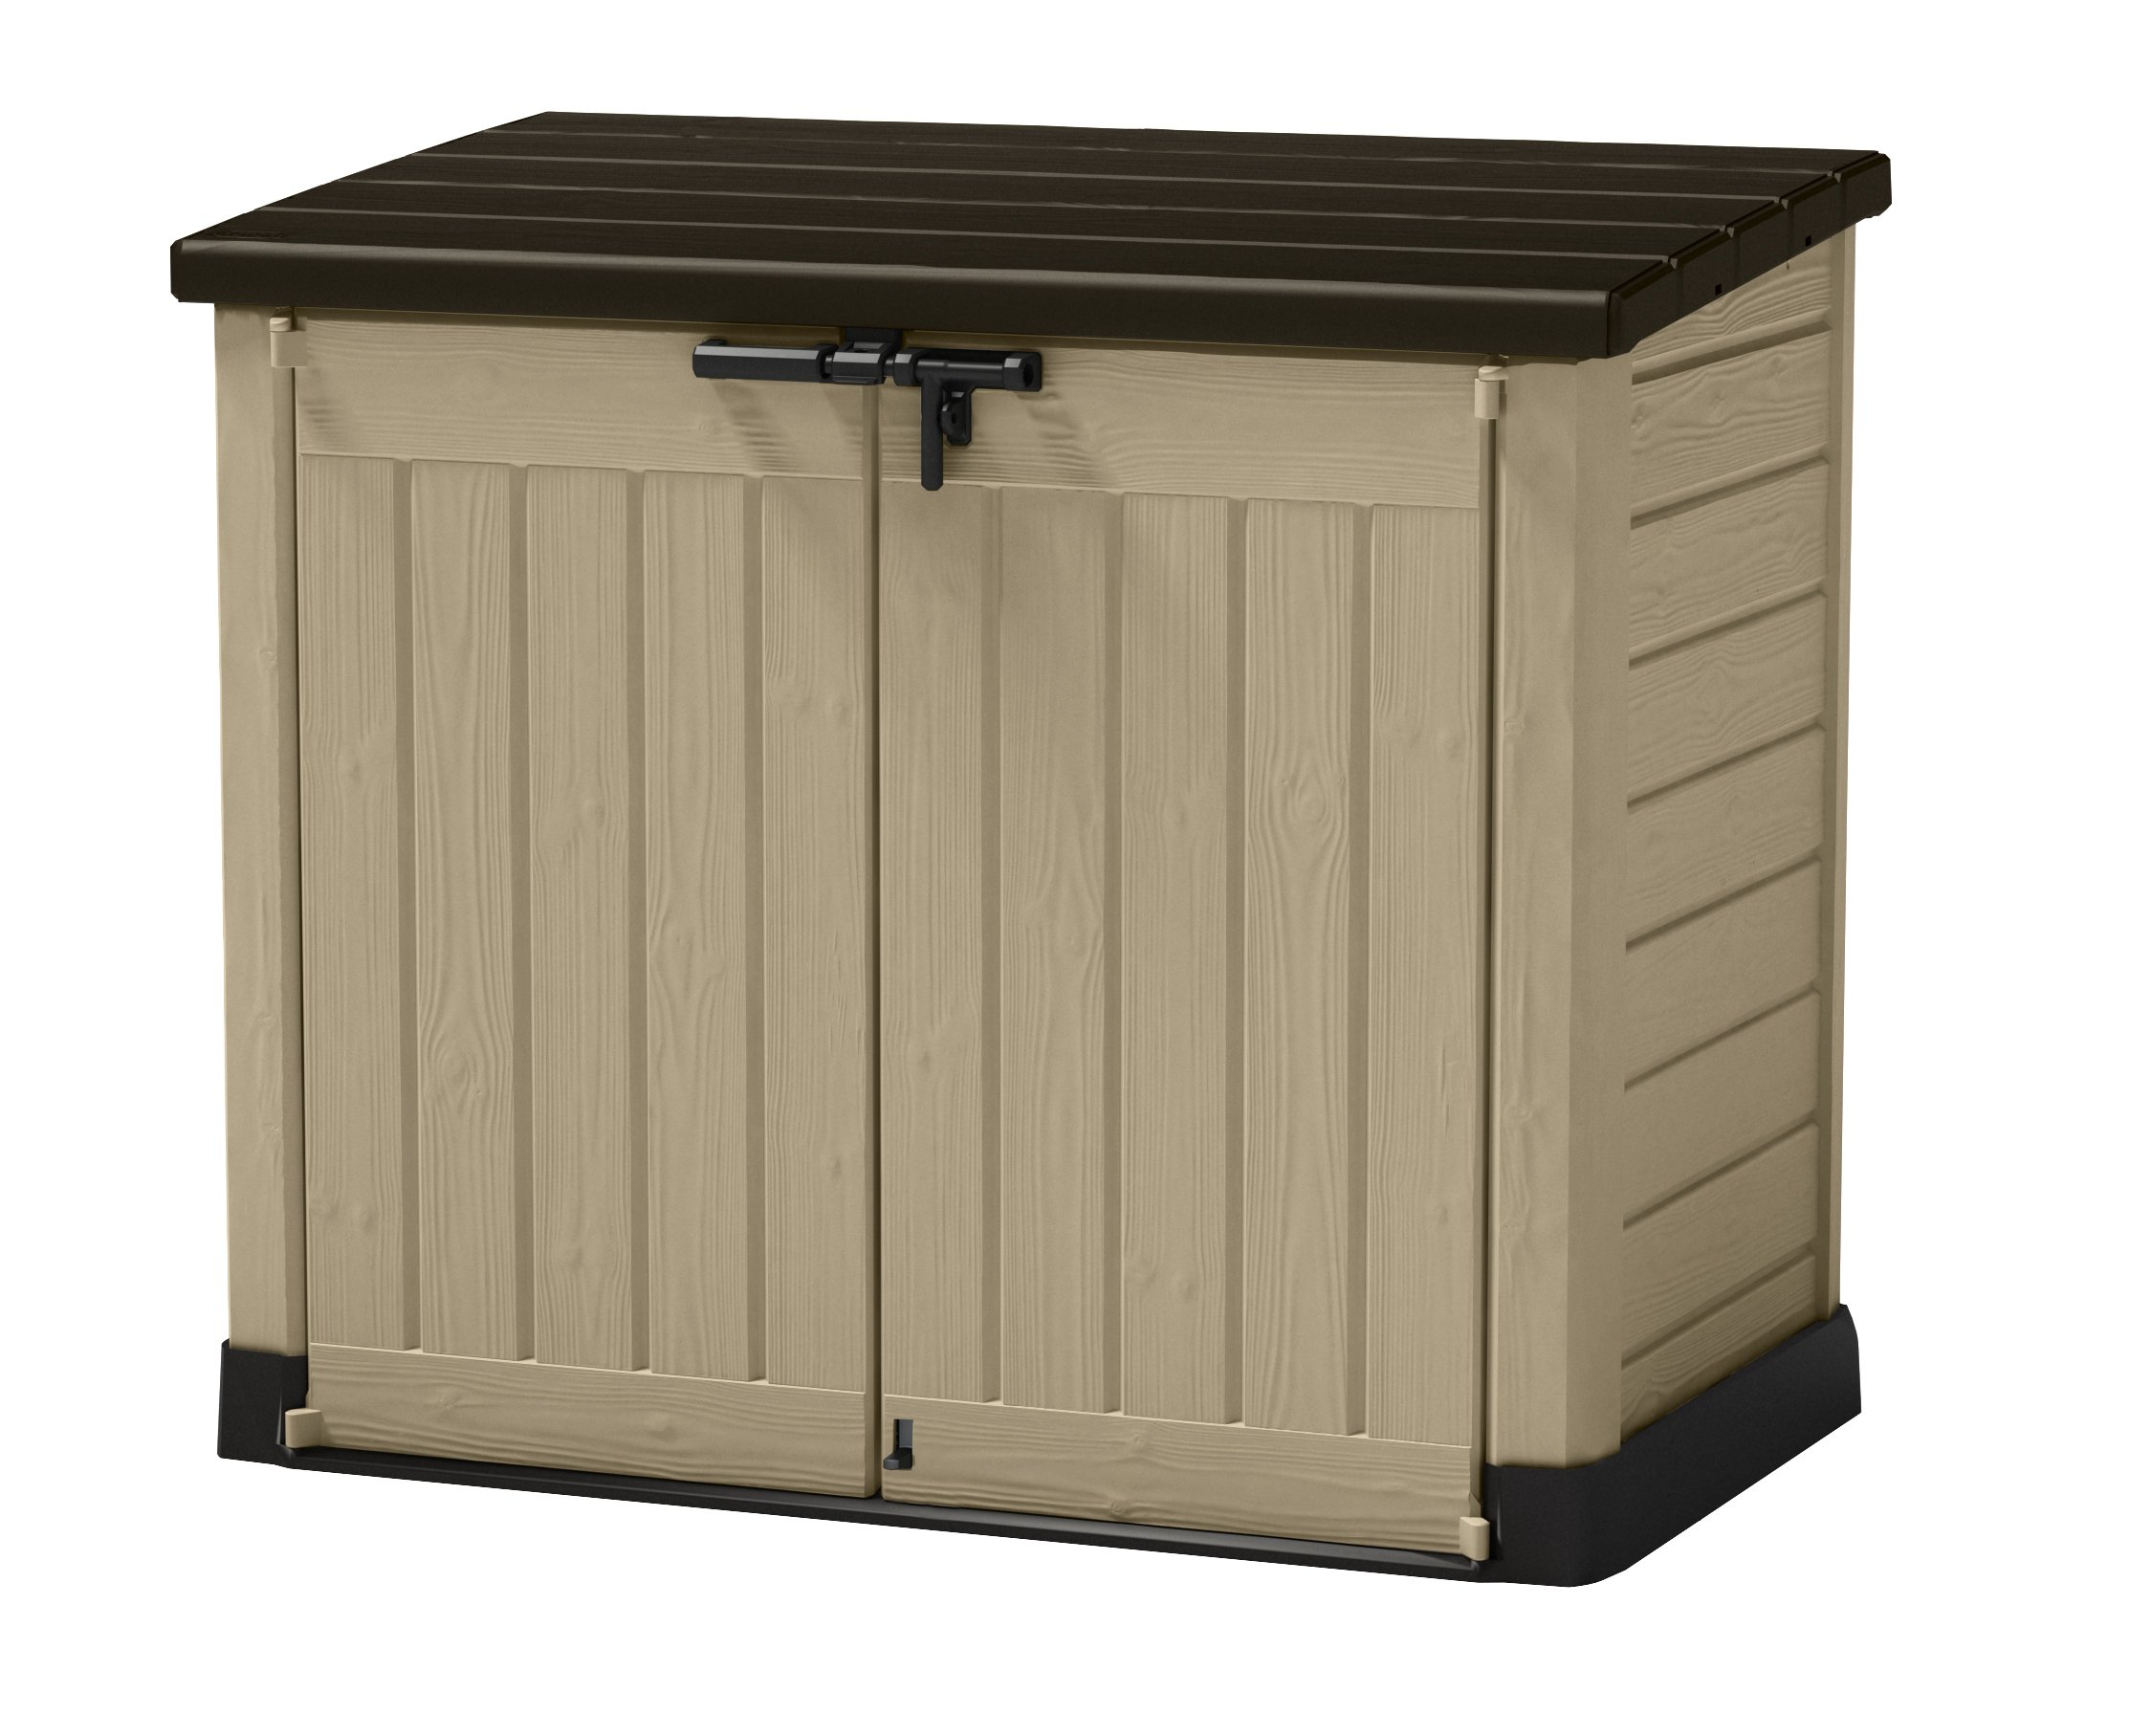 Keter 226814 Store-It-Out MAX 4.8 x 2.7 Outdoor Resin Horizontal Storage Shed, 42 cu.ft, Beige/Brown by Keter